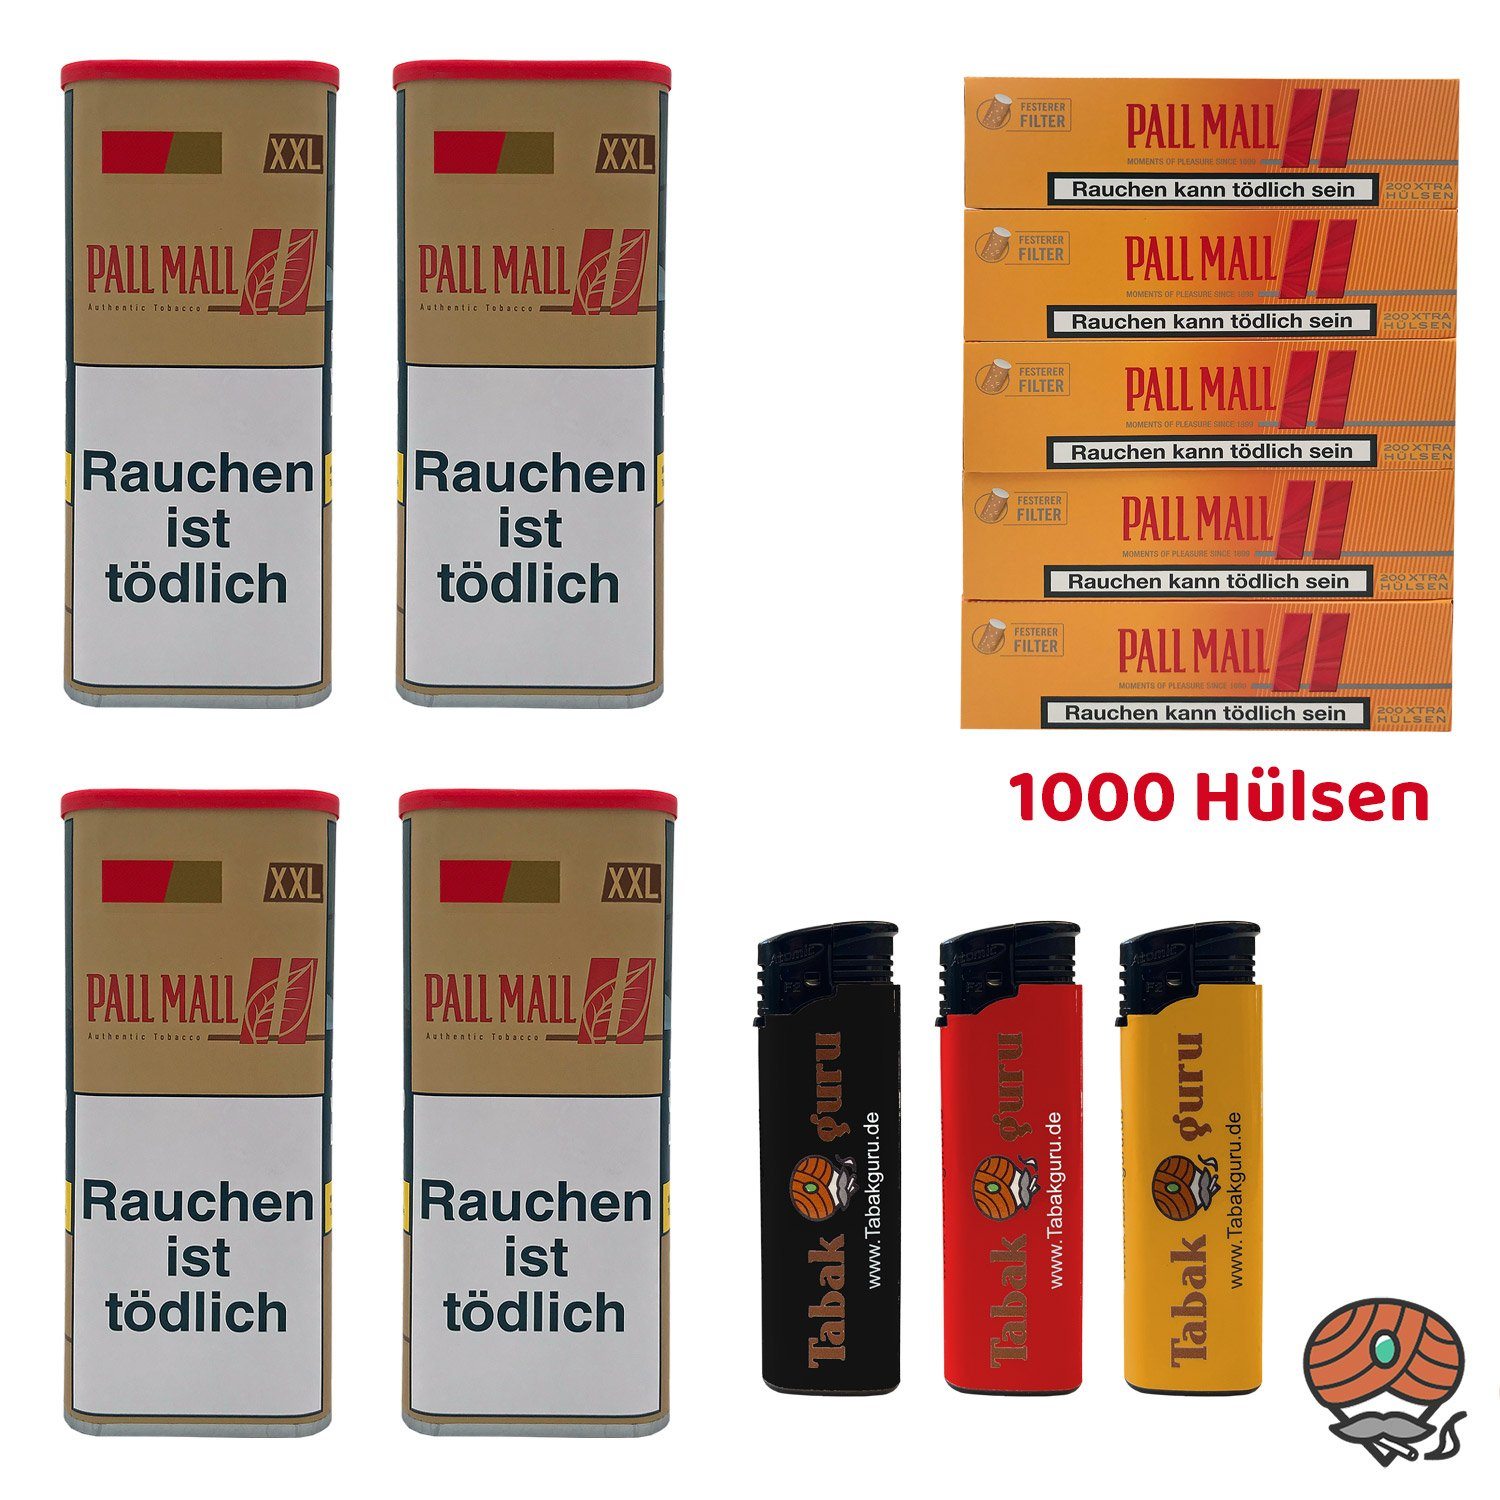 4x Pall Mall Authentic Red / Rot Tabak à 95g, Allround Hülsen, Feuerzeuge